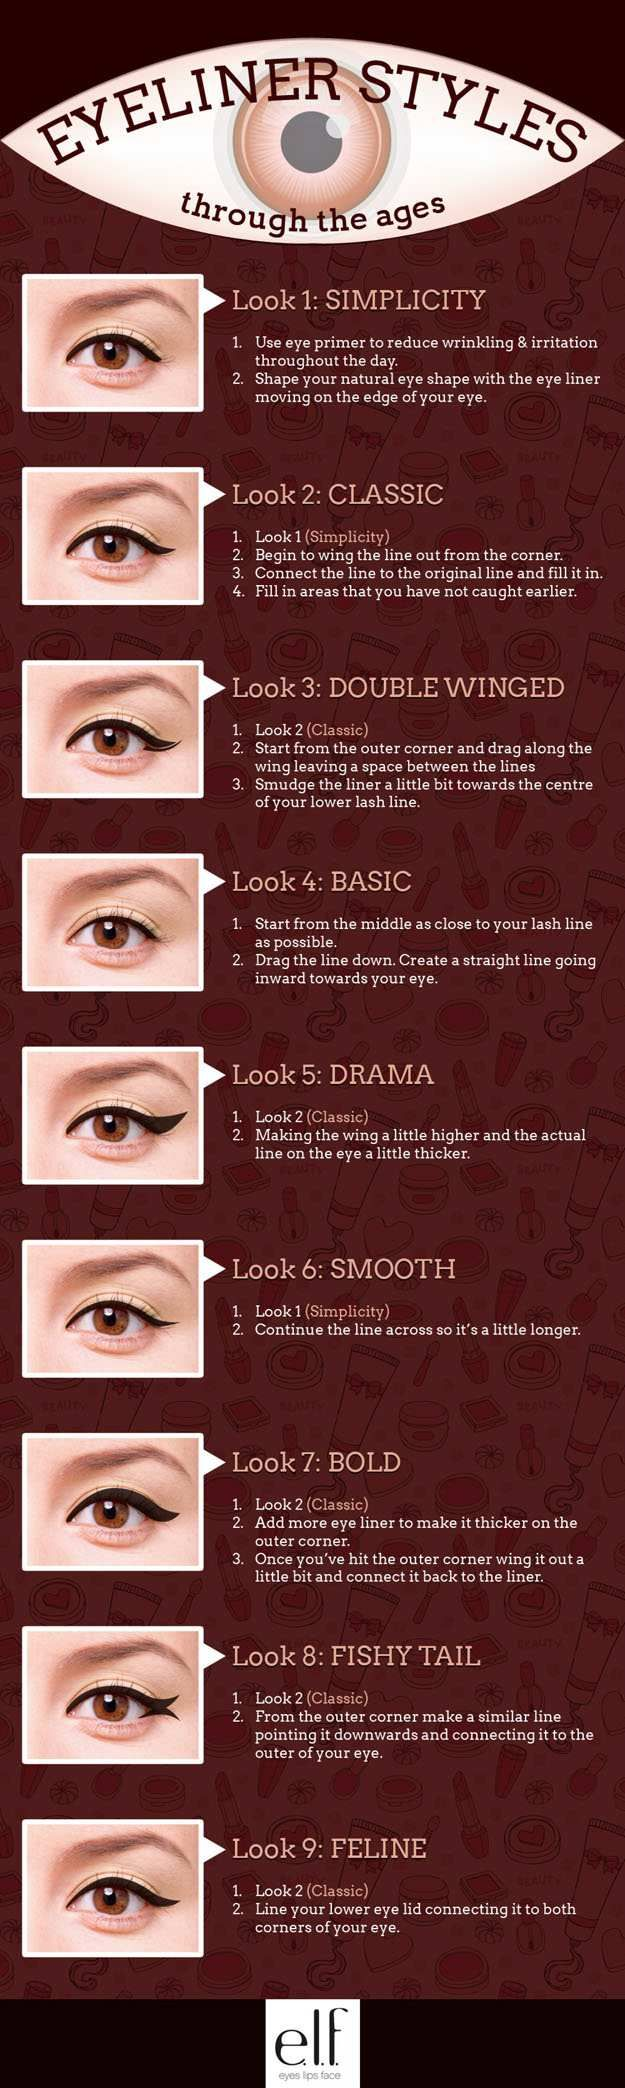 Eyeliner Styles through the Ages | Best Makeup Tutorials